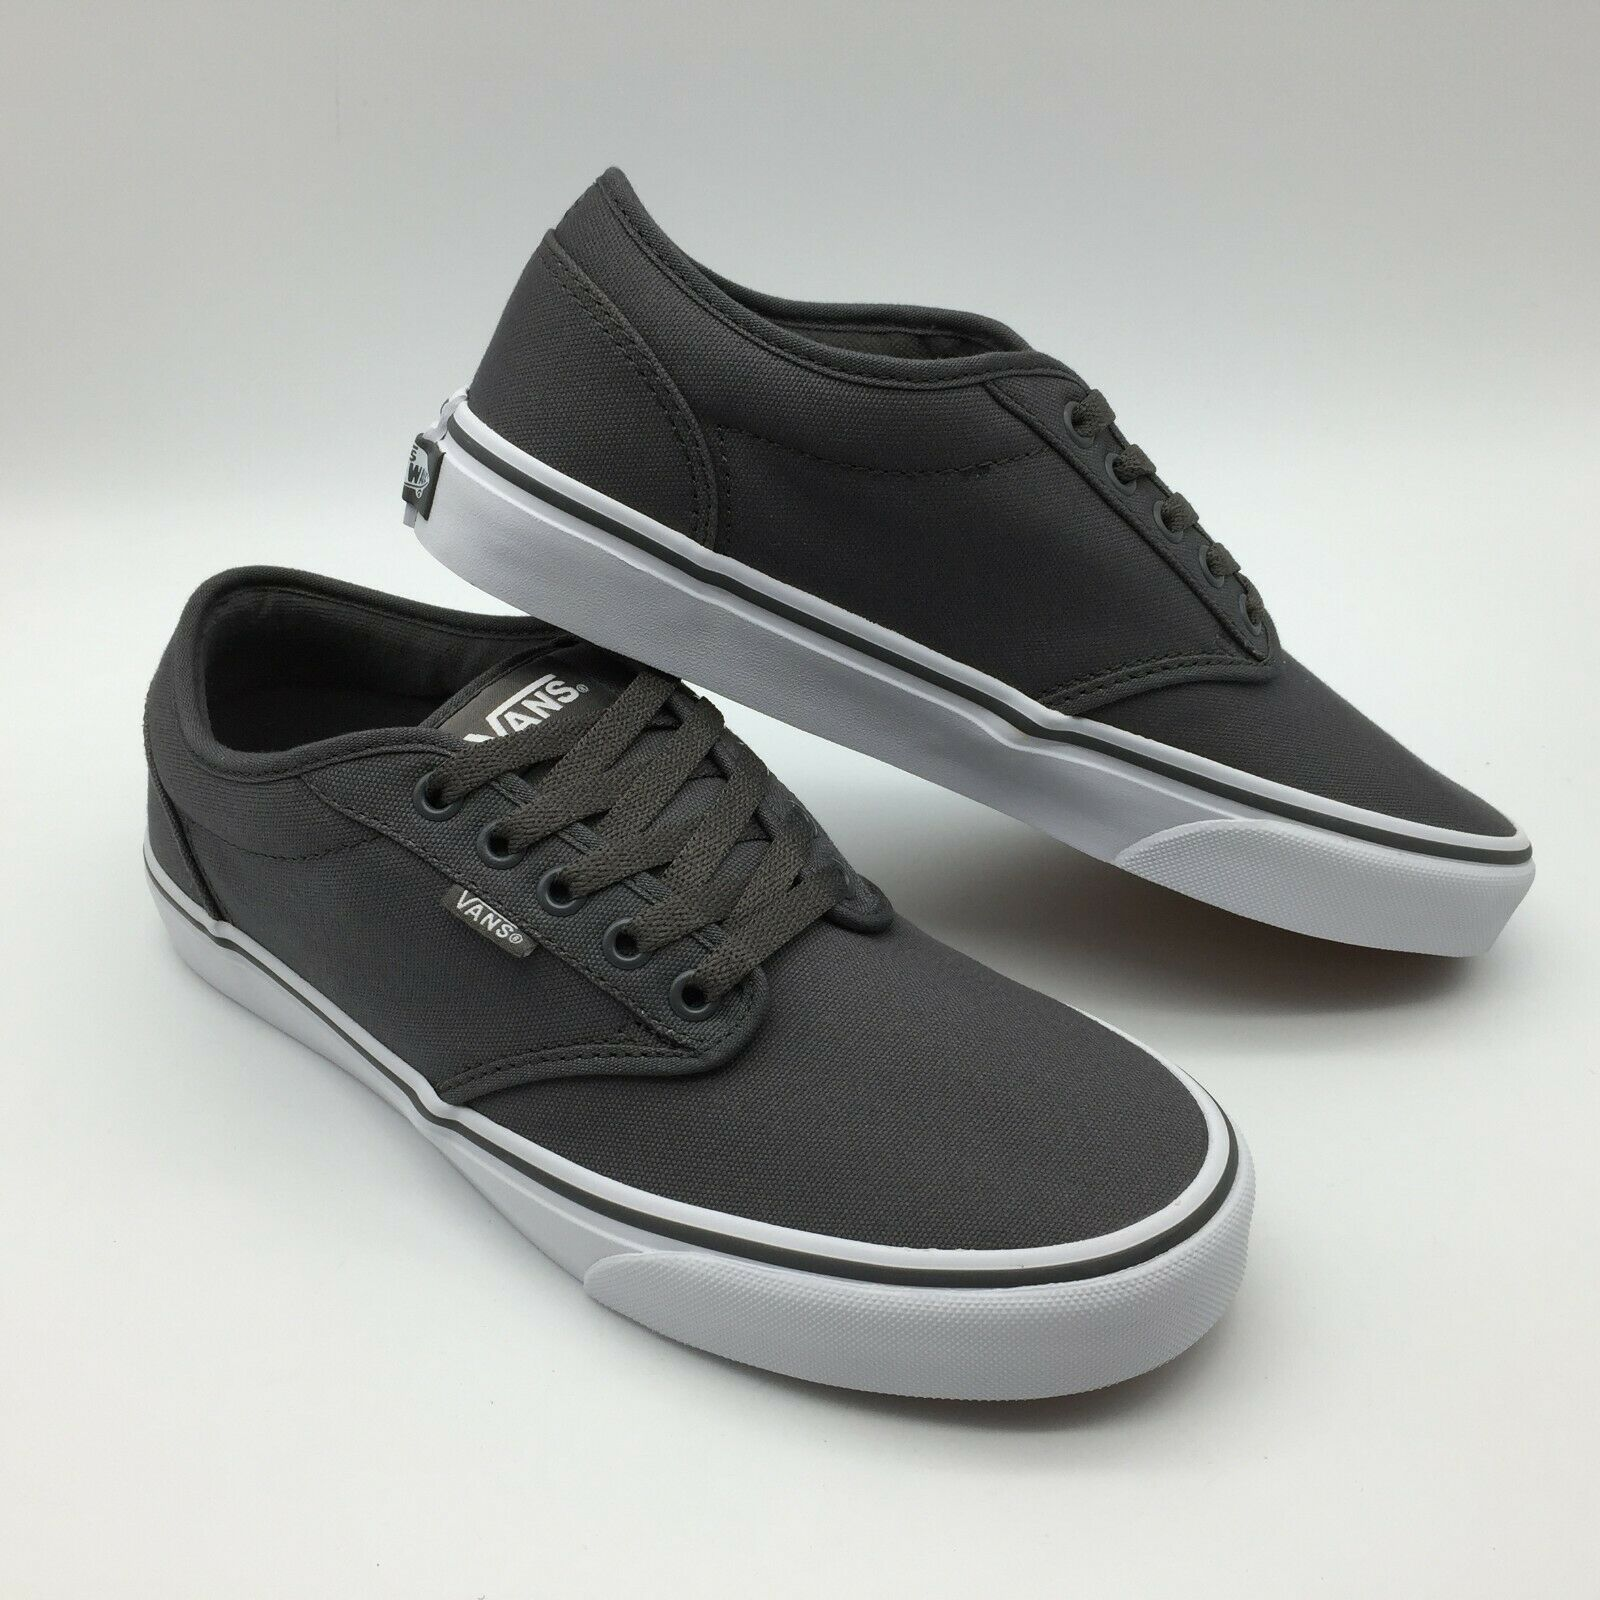 Vans Men Women's shoes's Atwood -- (Canvas) Pewter White